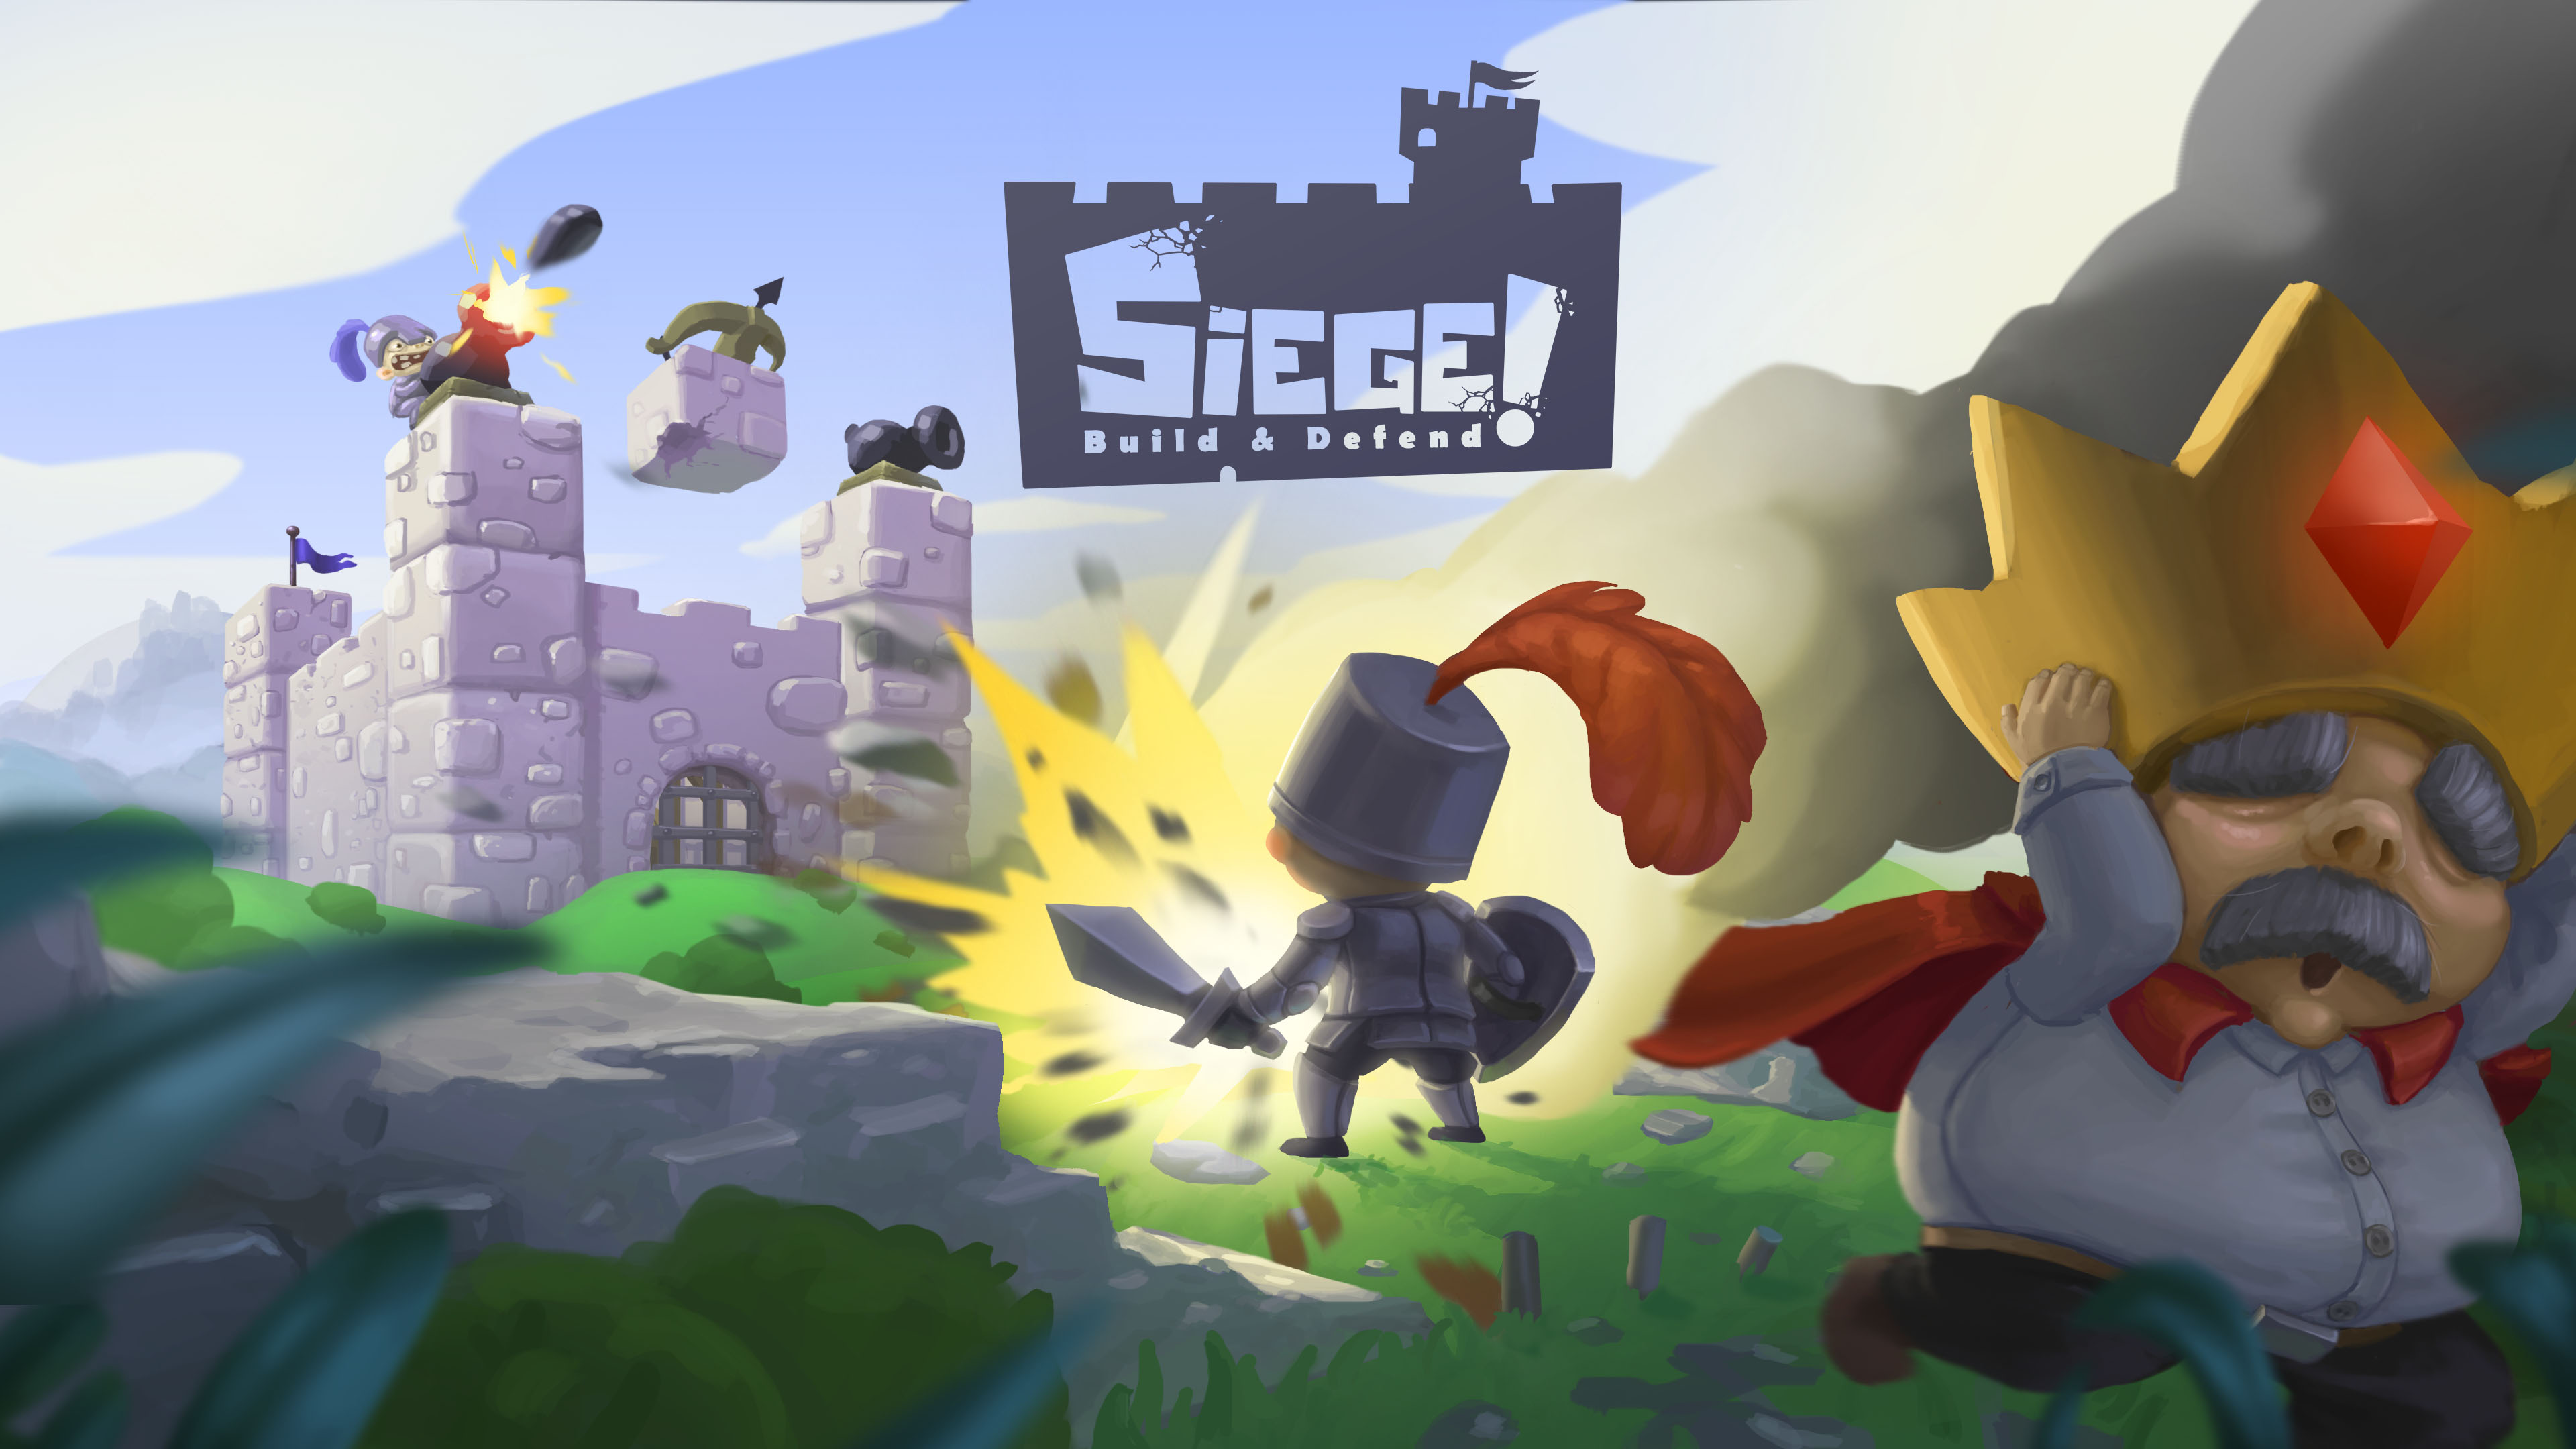 SIEGE! by 2nd Studio